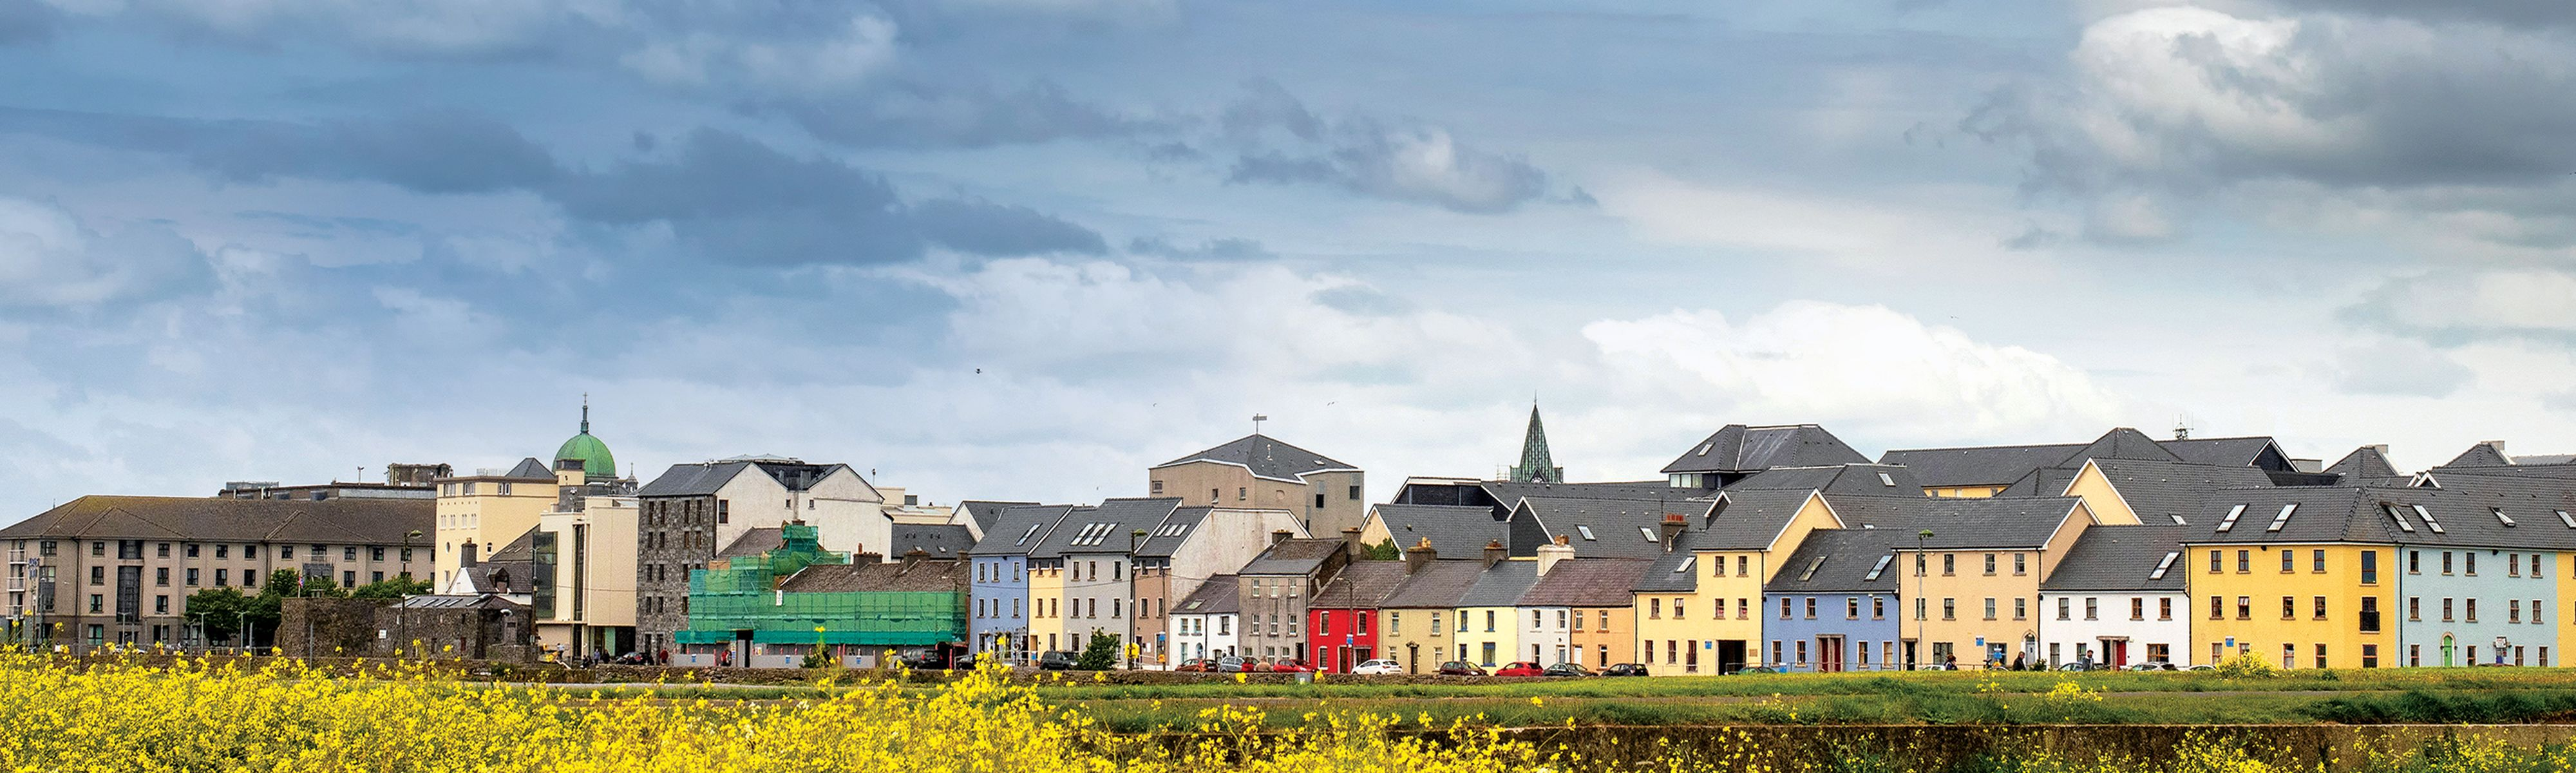 colorful houses along the coast in galway ireland